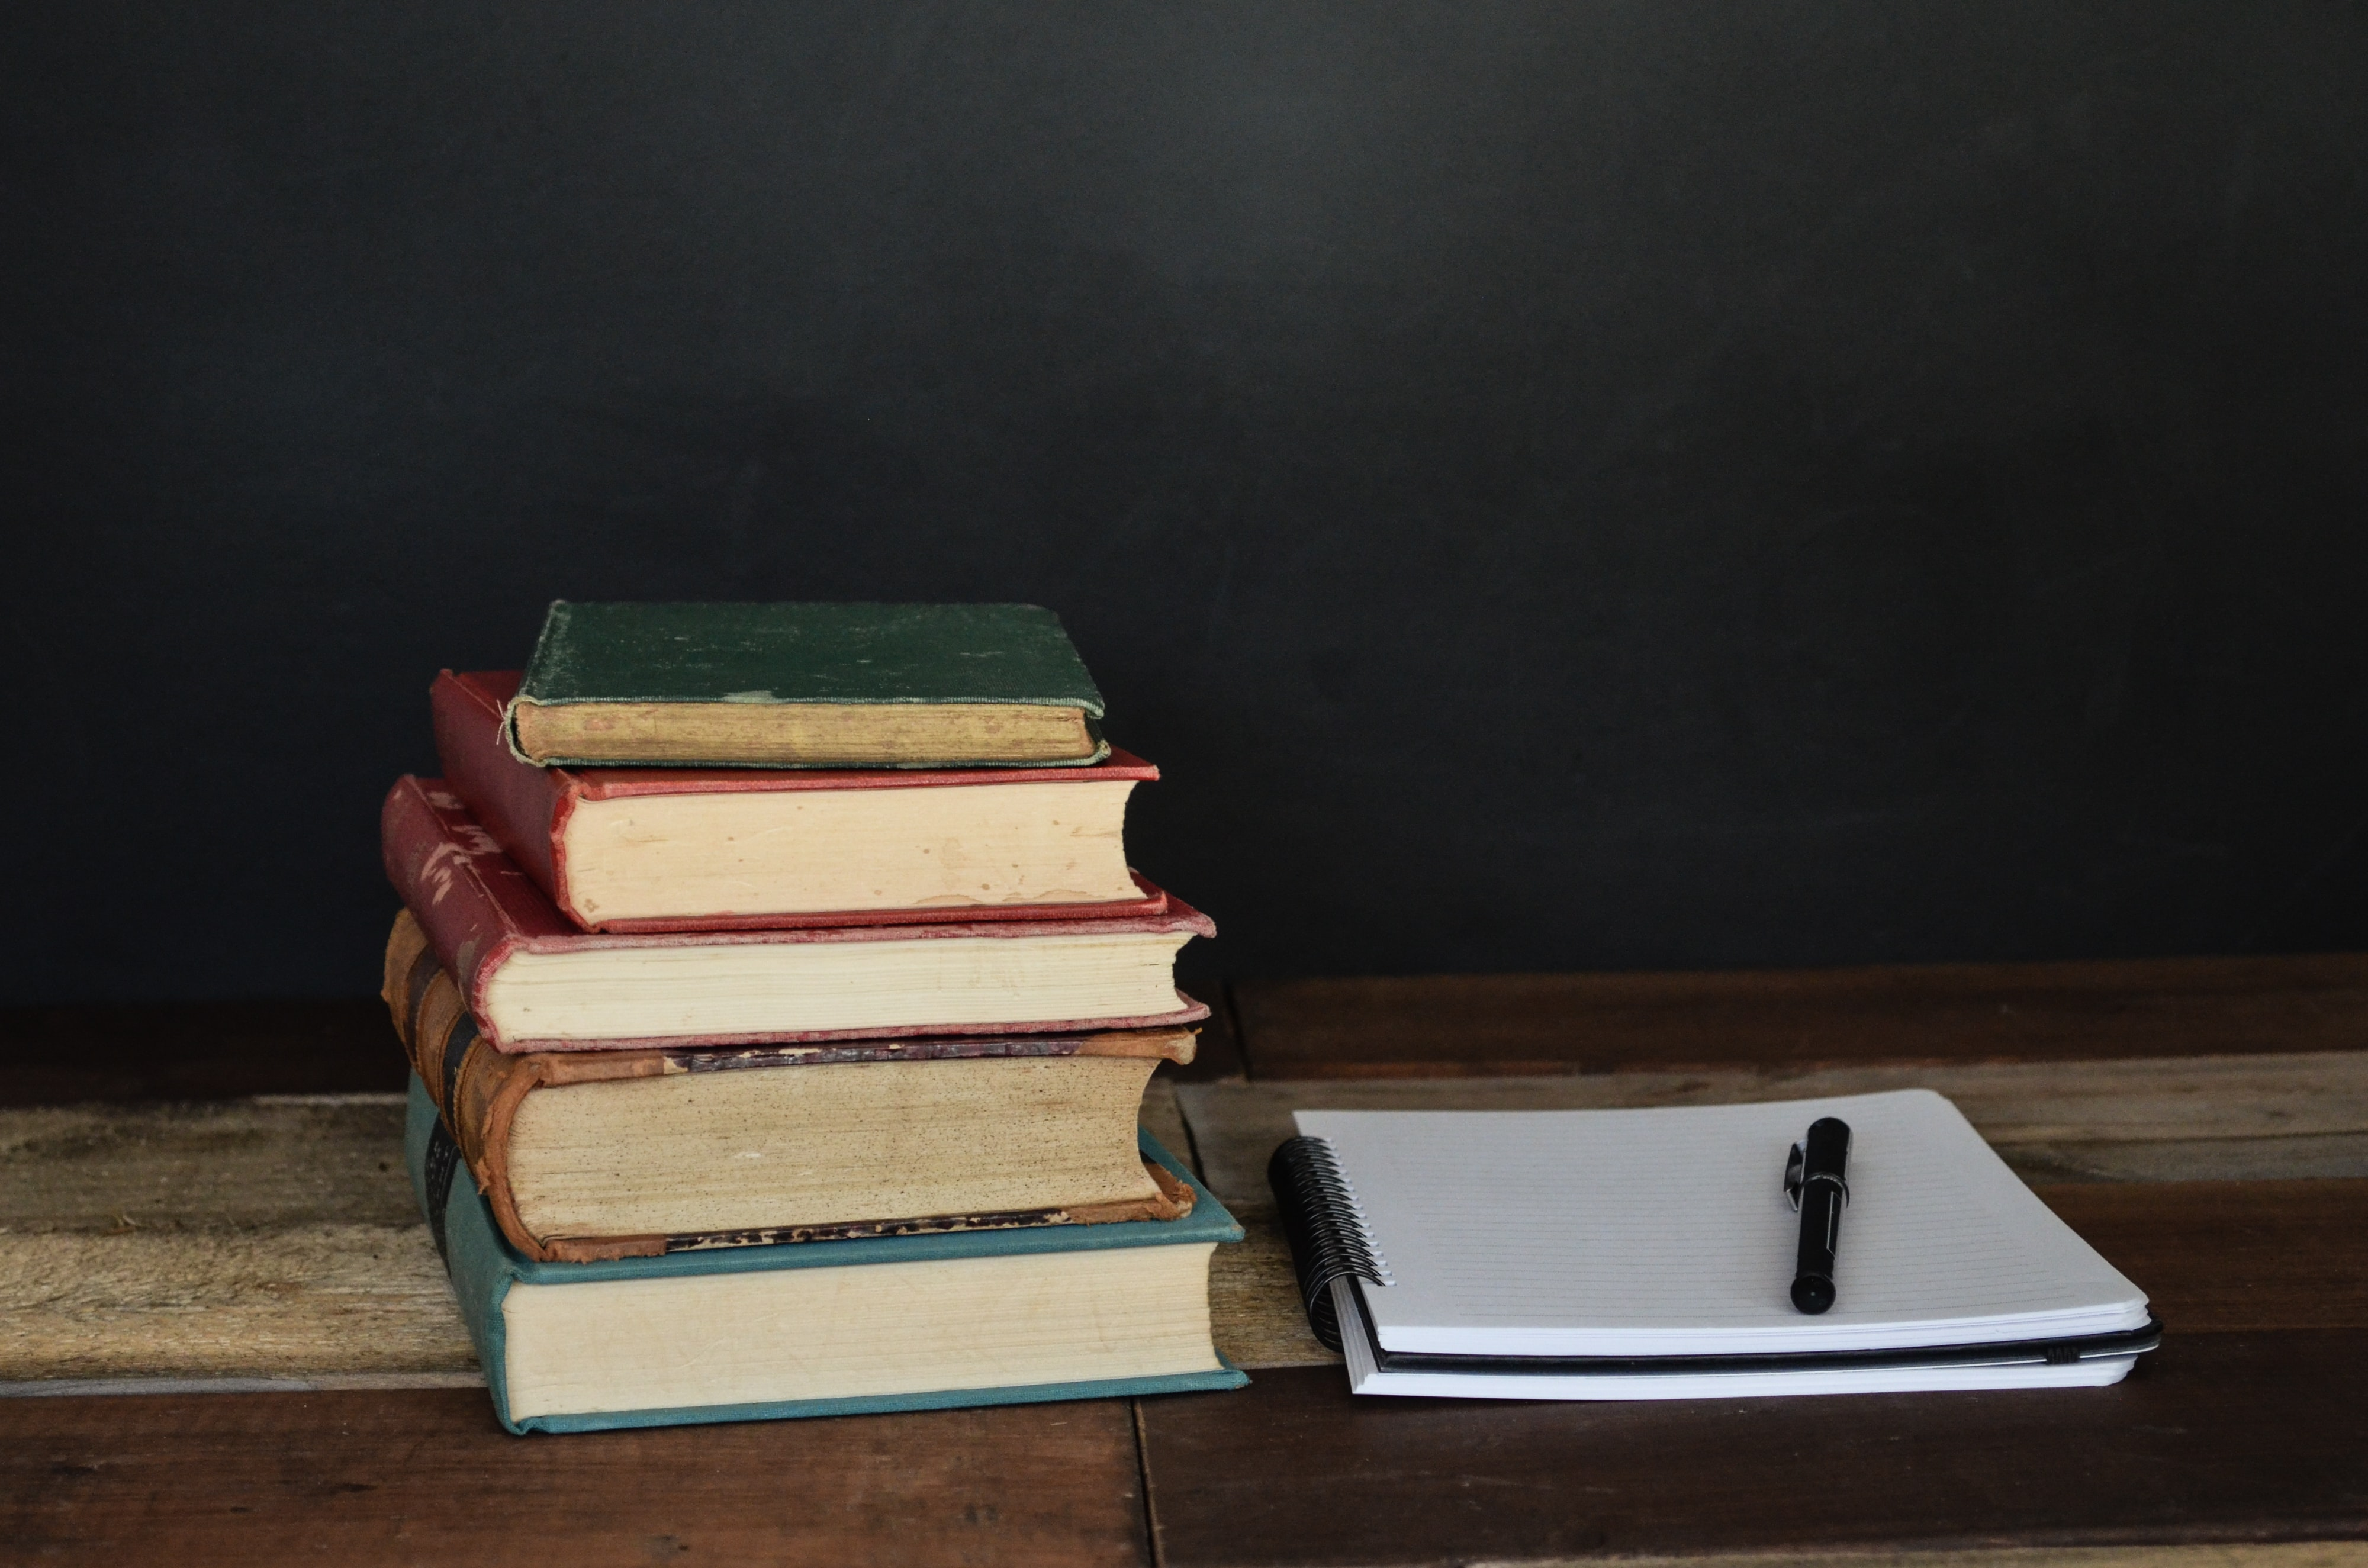 Law books and notepad with pen